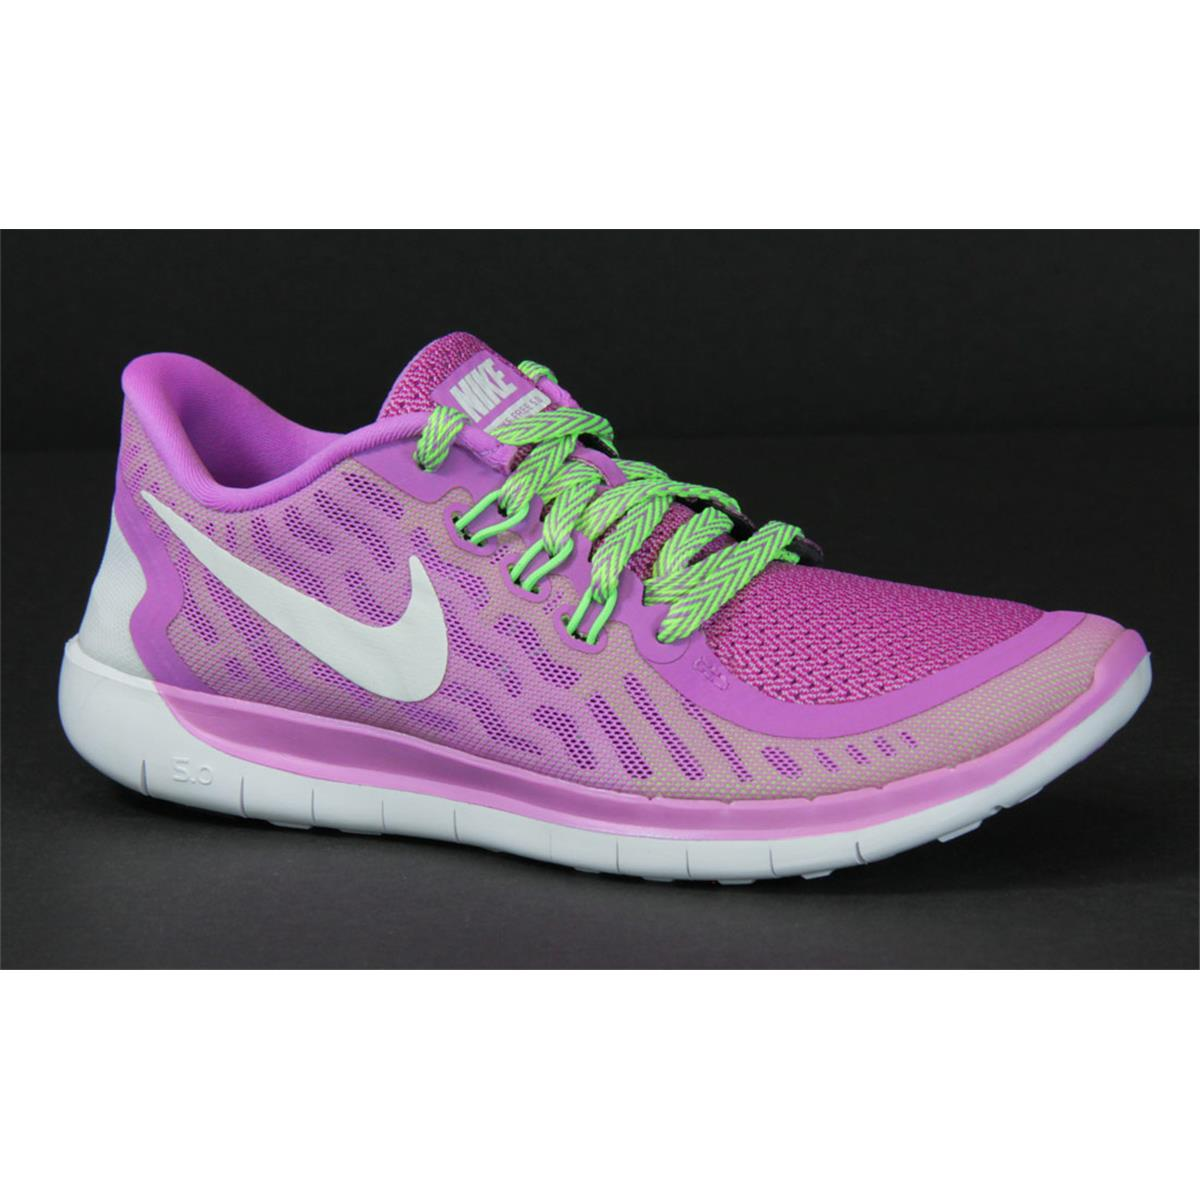 Nike Free 5.0 Junior Uk